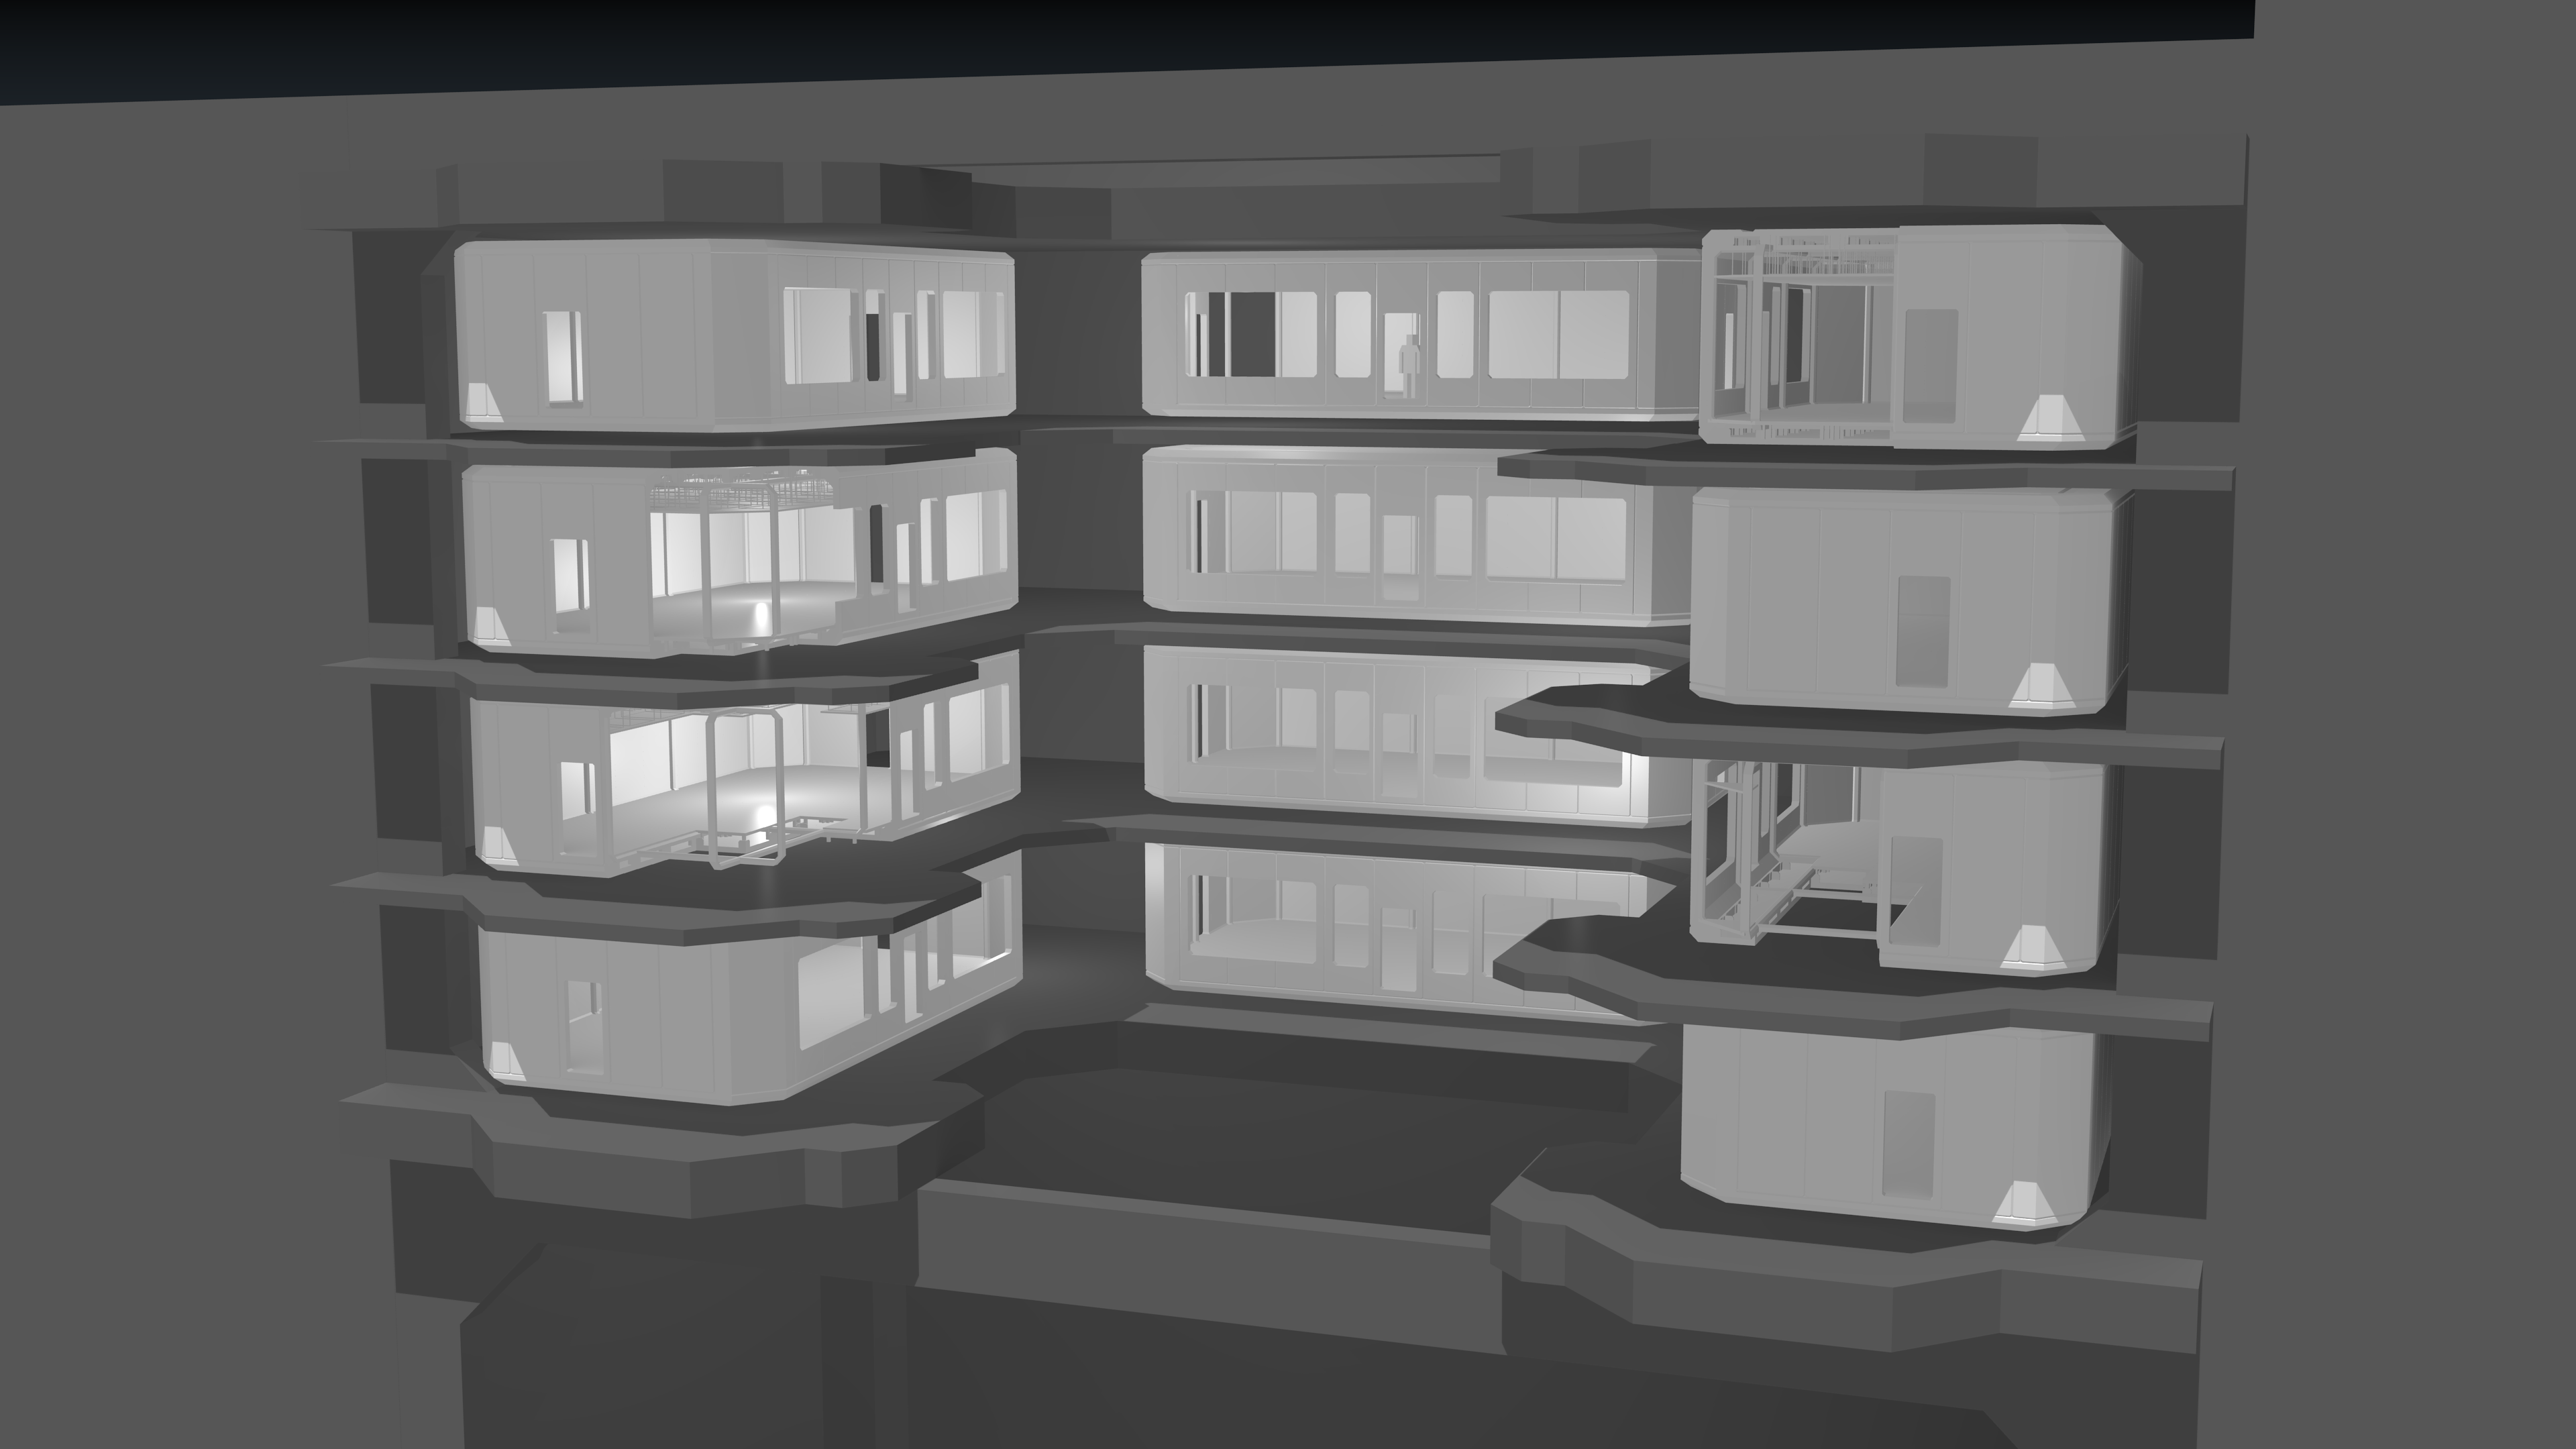 House_WIP_02.png